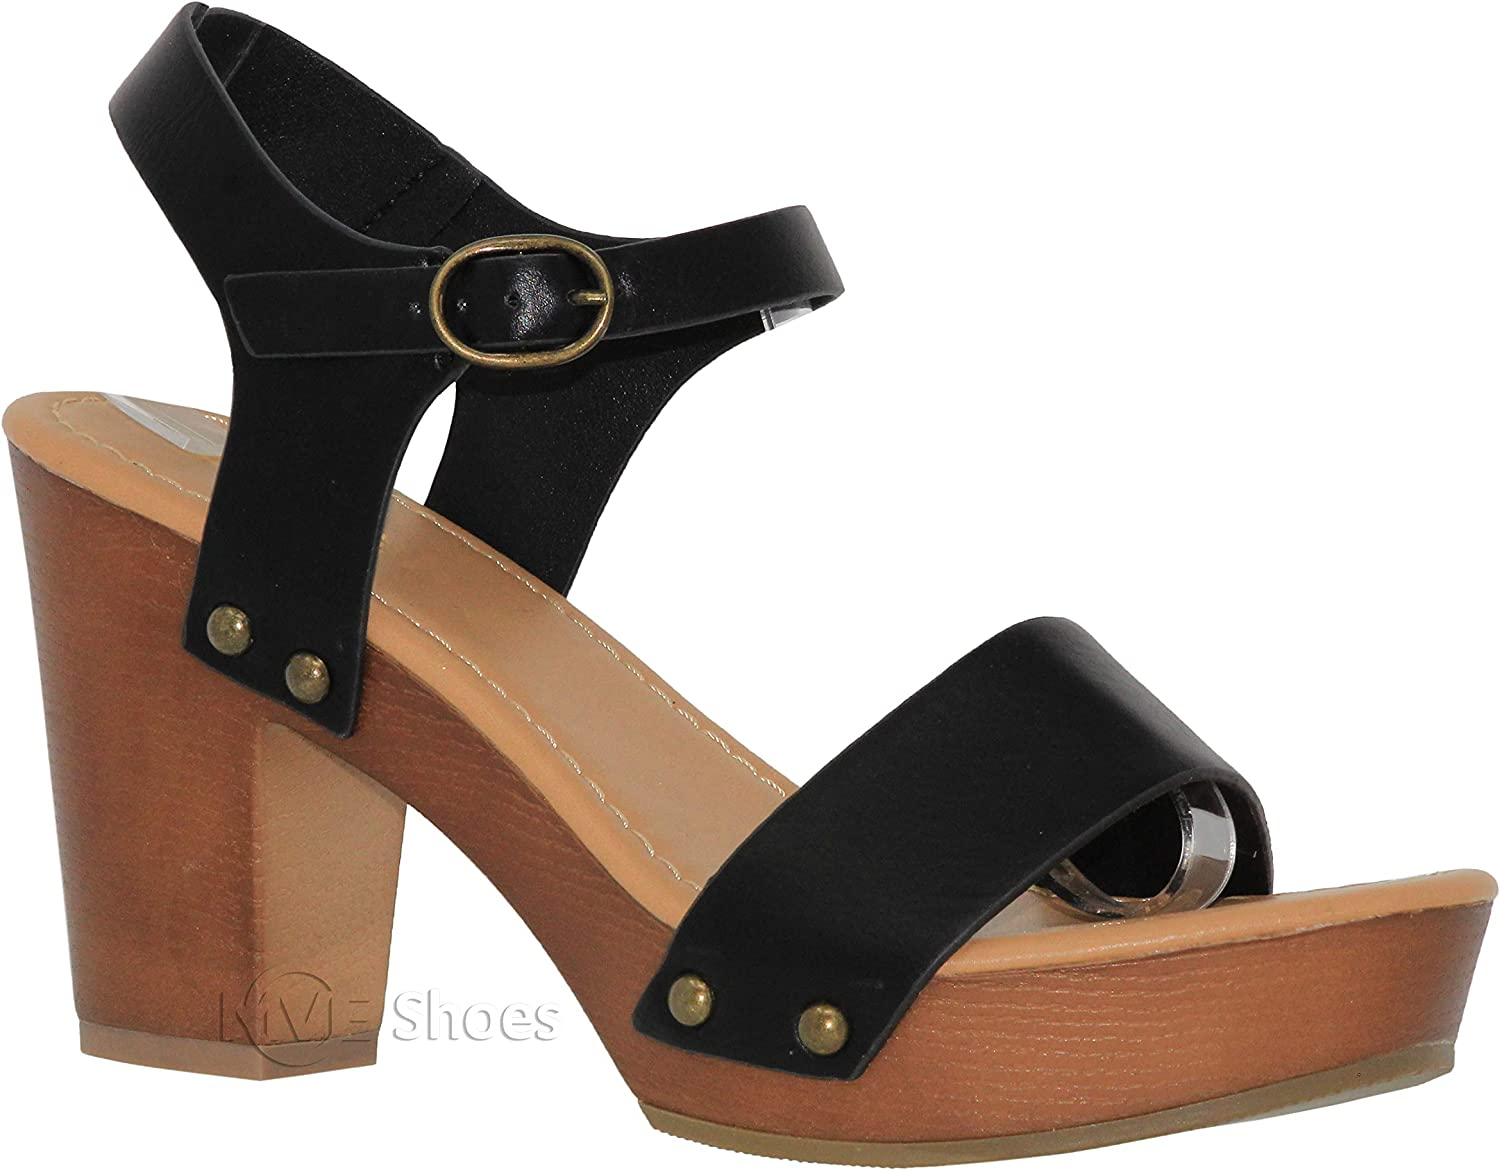 MVE Shoes Women's Regular discount Ankle Strap Wood Max 65% OFF Platform Chunky Heel Faux